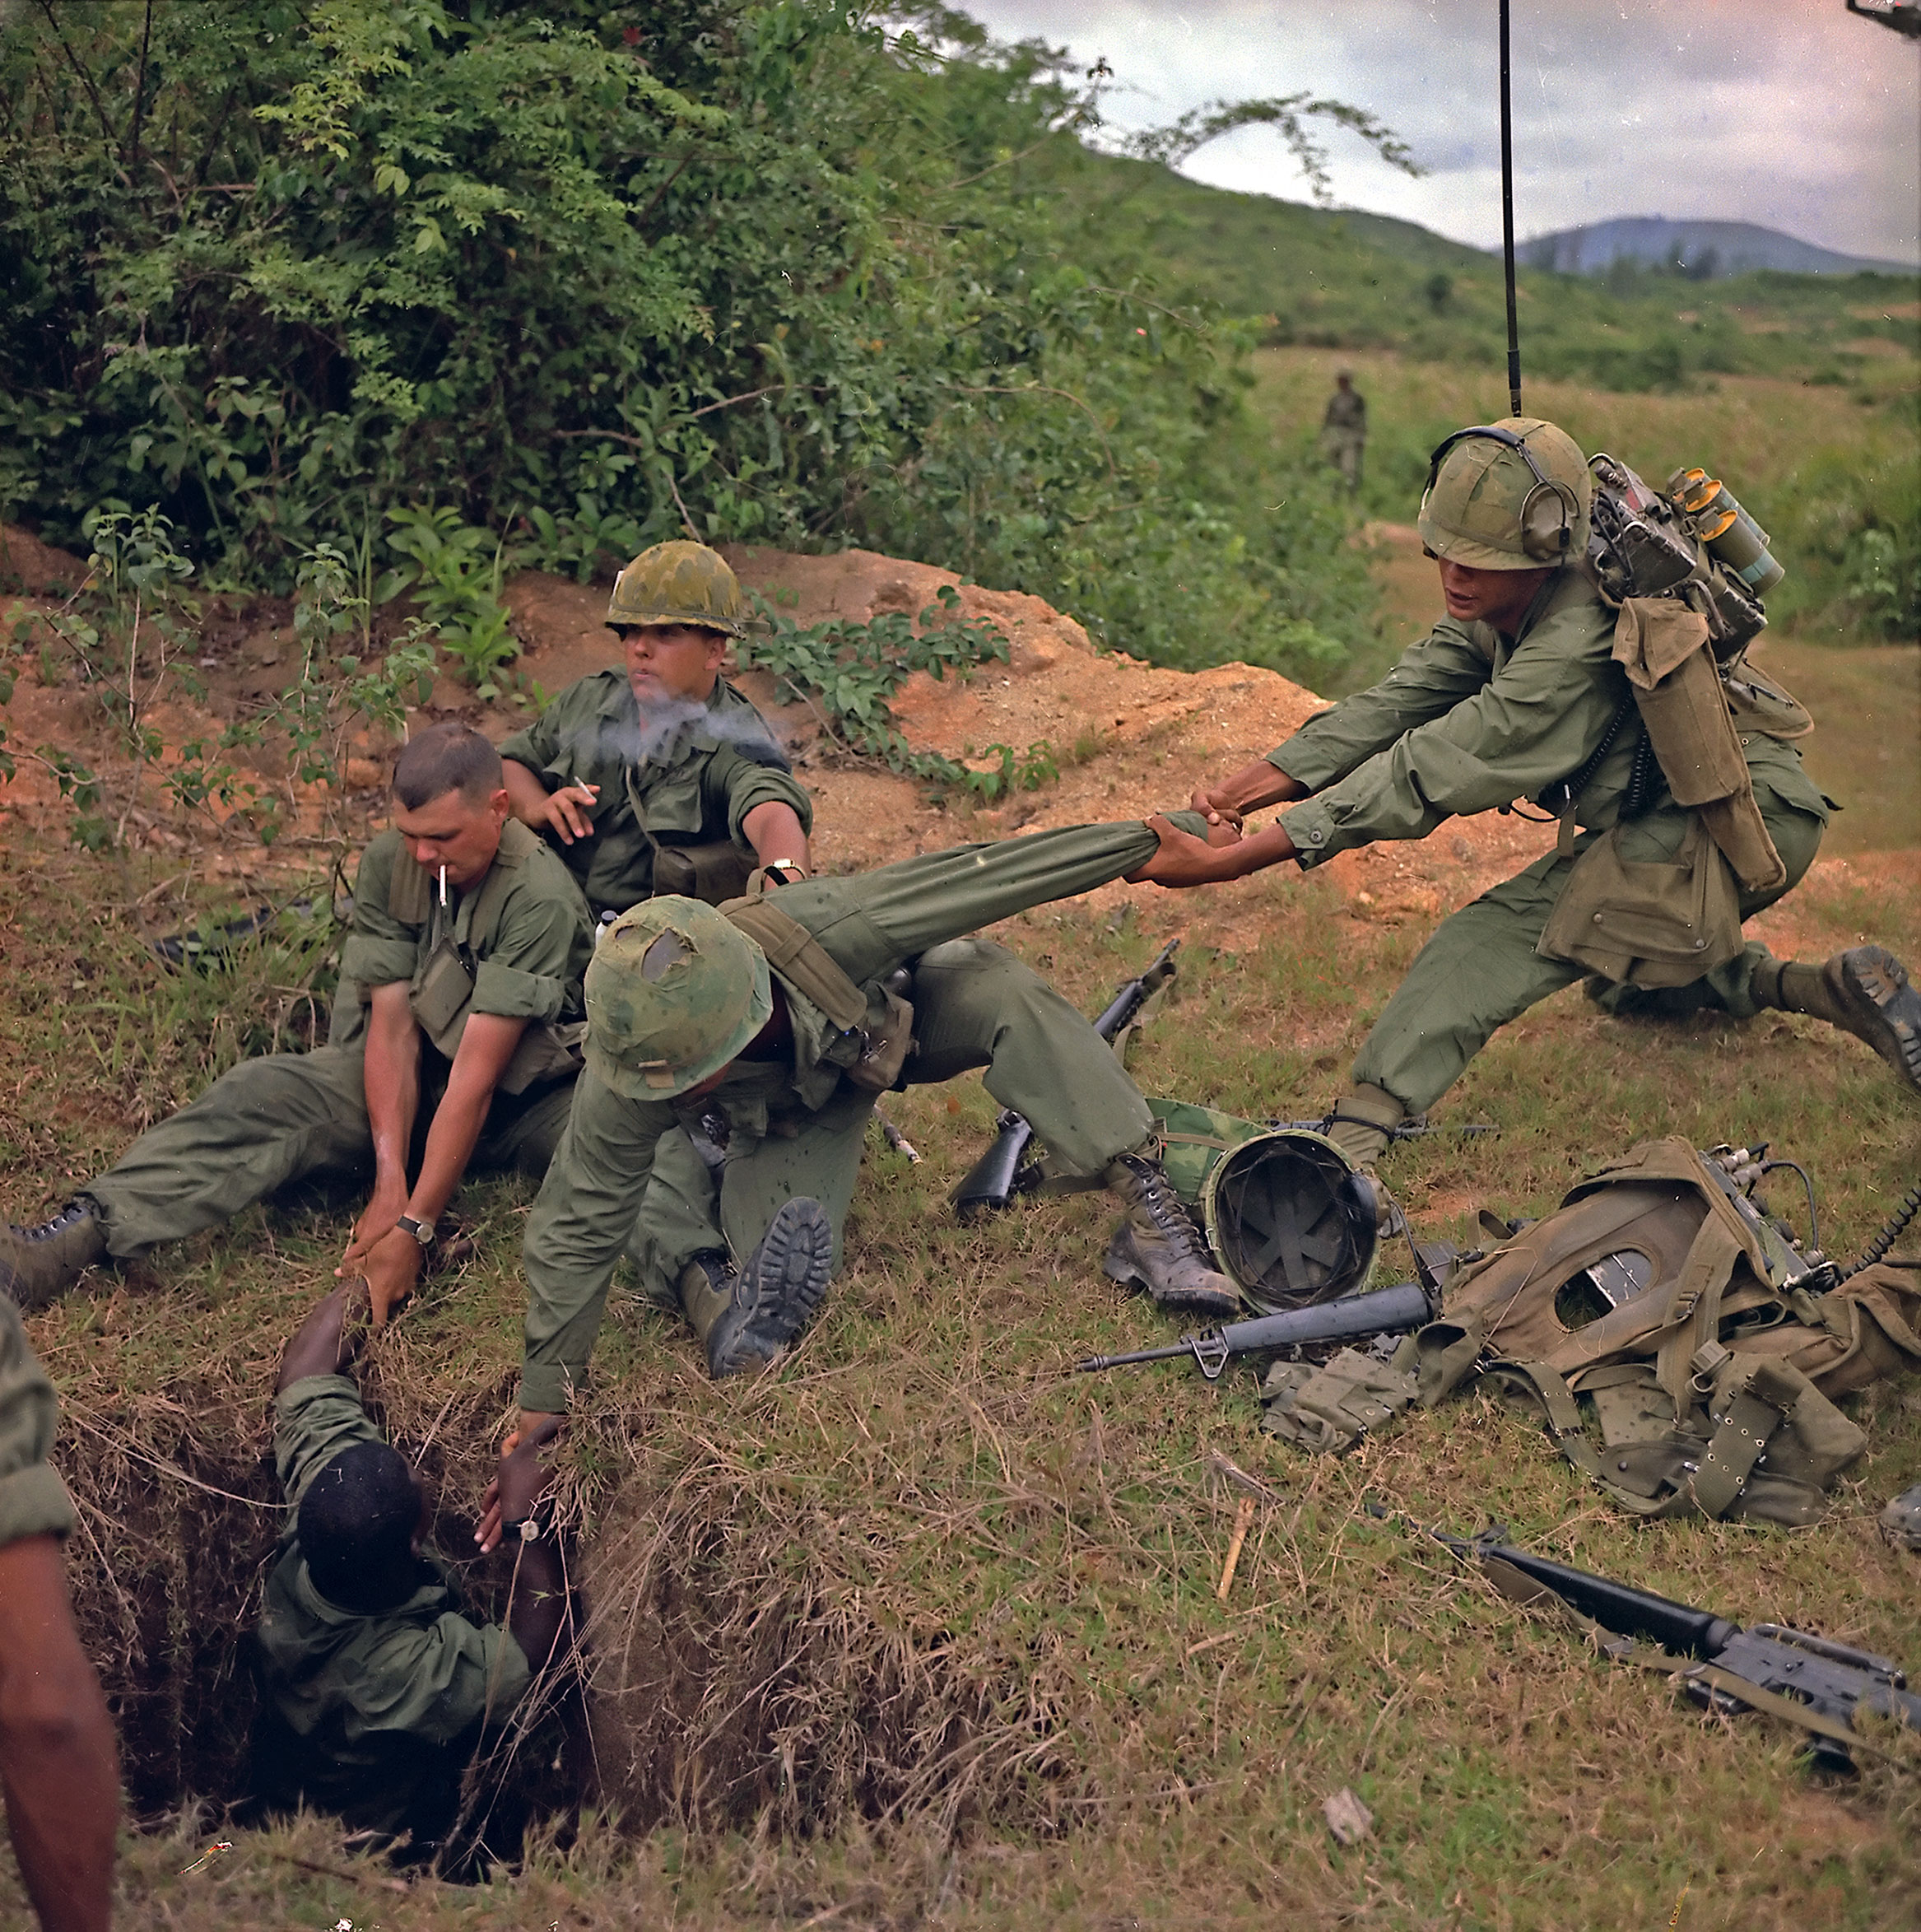 File:Vietnamtunnel.jpg - Wikipedia